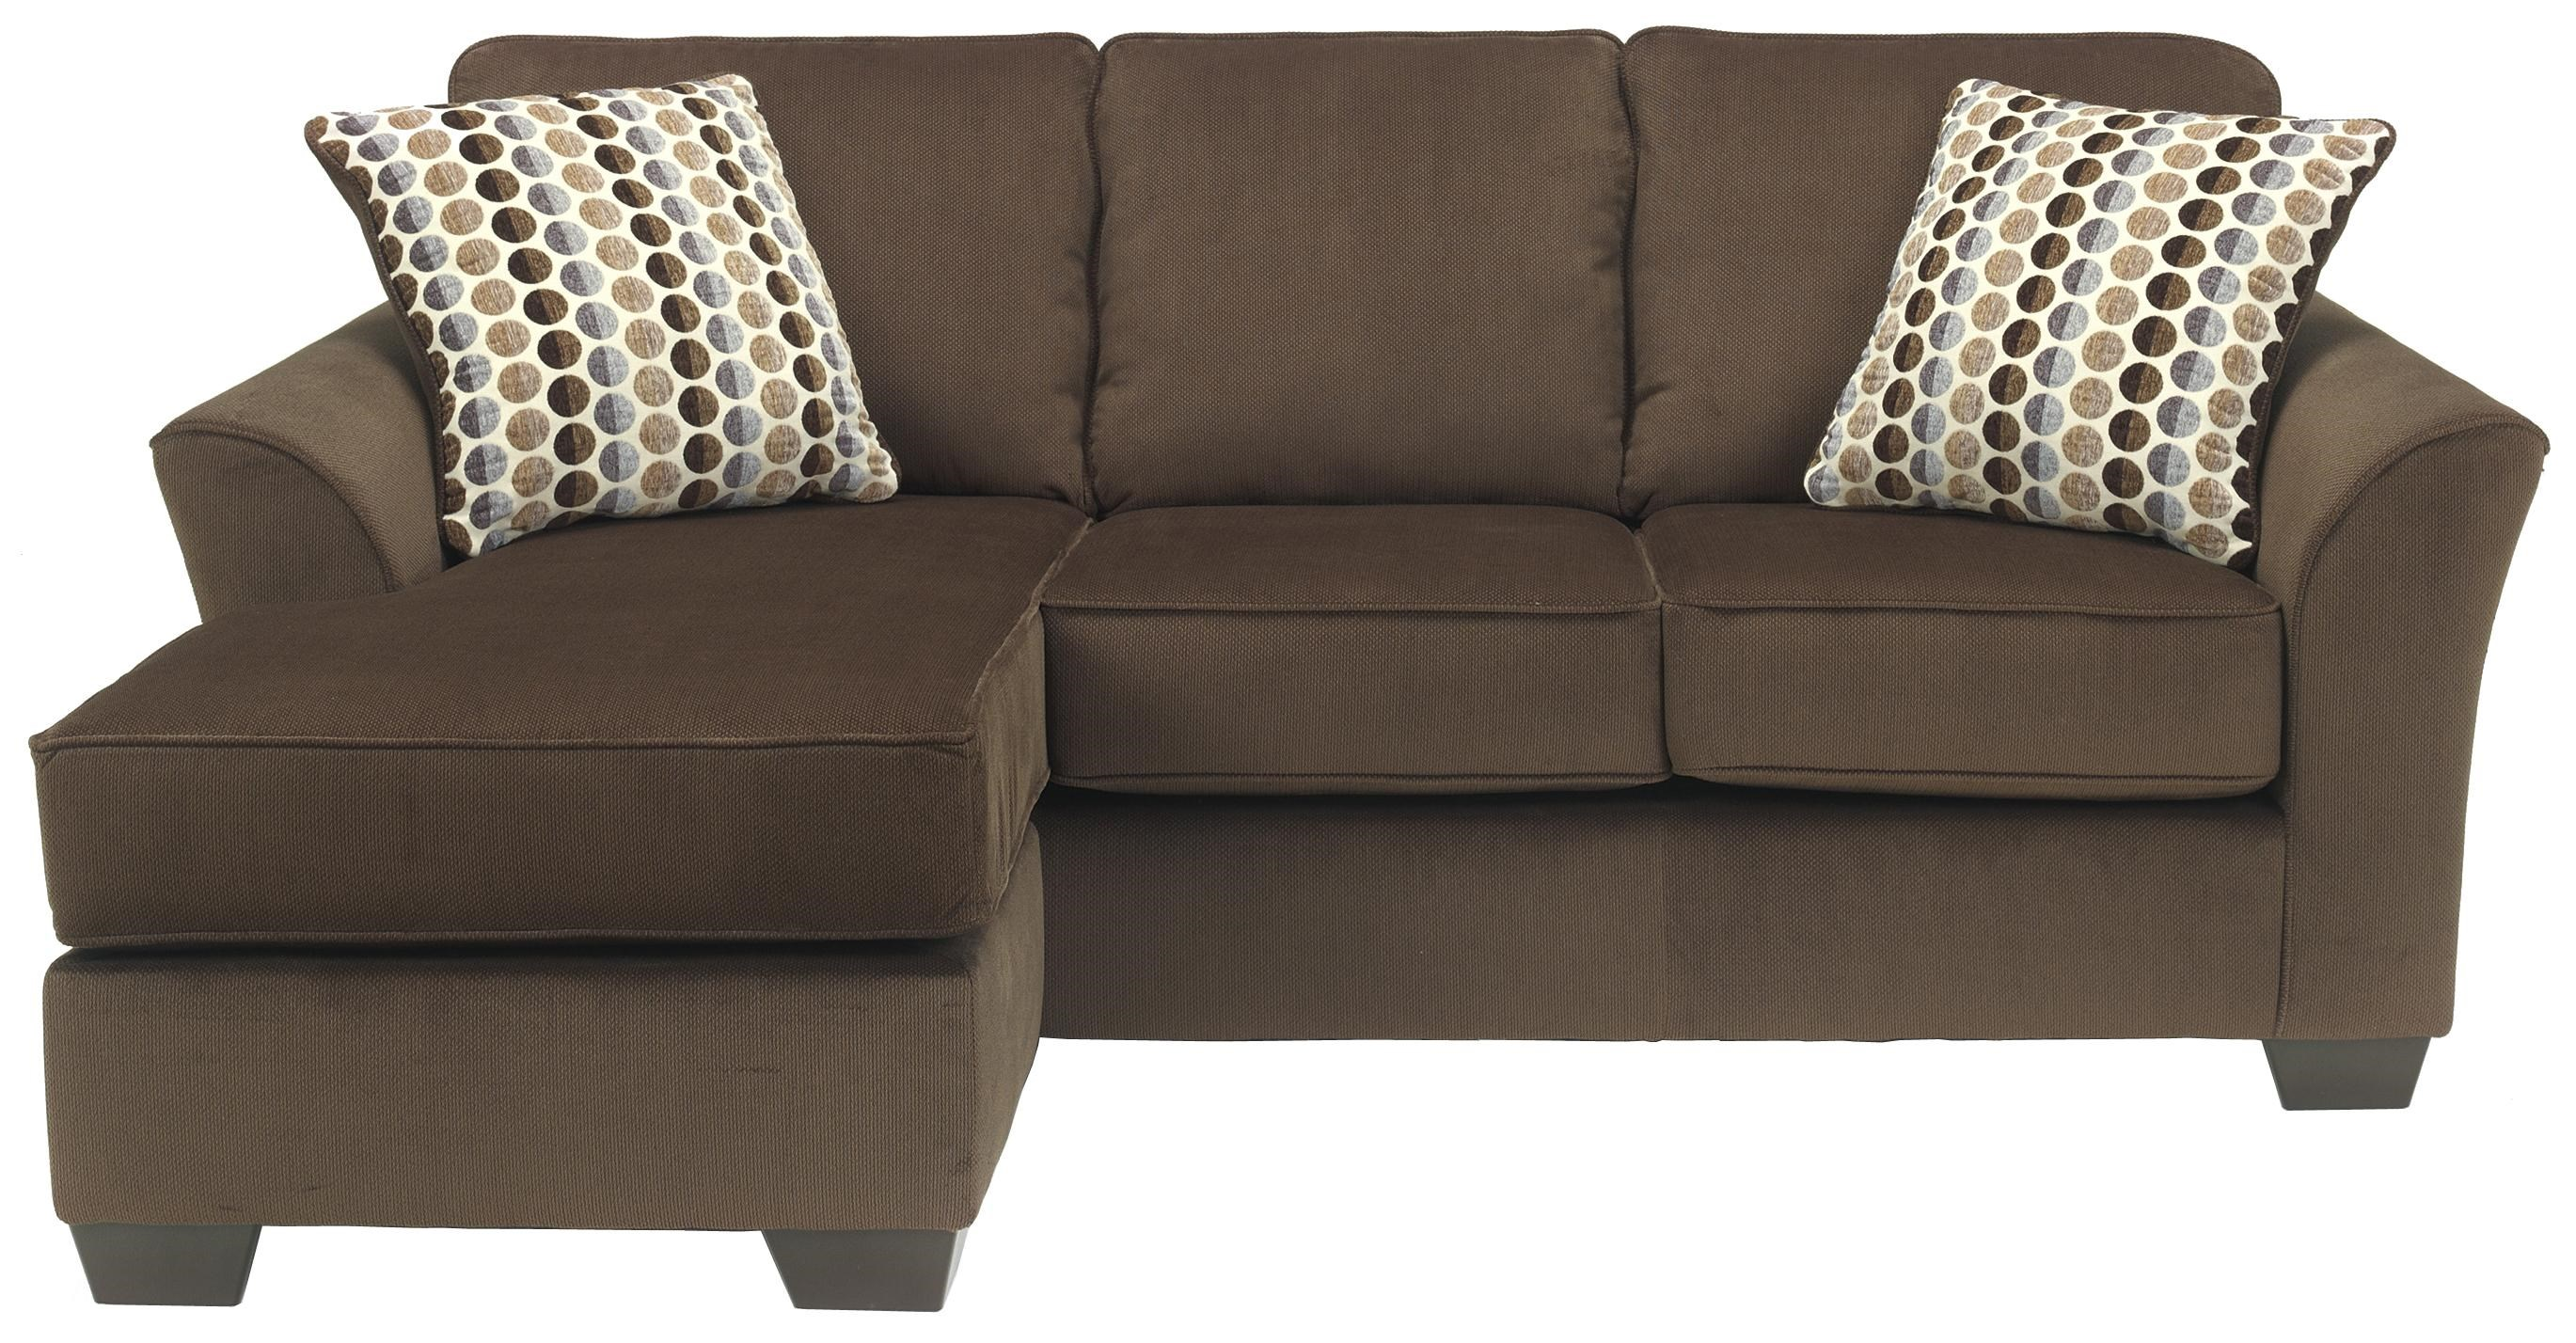 Cafe Chaise Ashley Furniture Contemporary Sofa With Geordie 5Aj3SLc4Rq